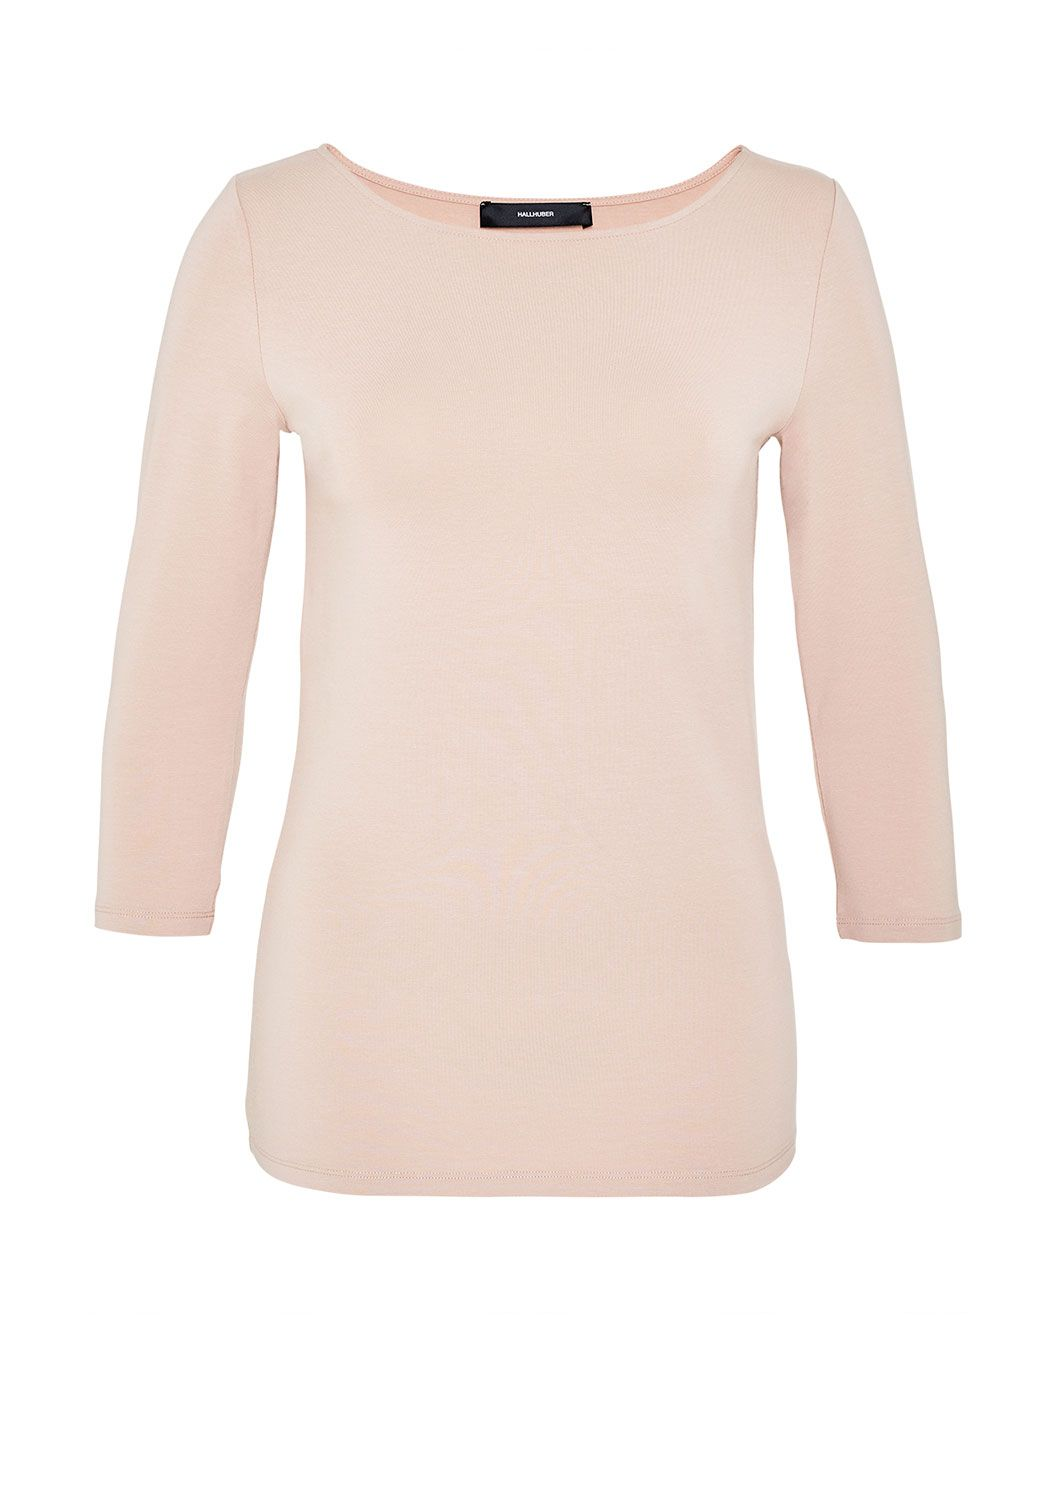 Hallhuber Boat Neck Top, Pink